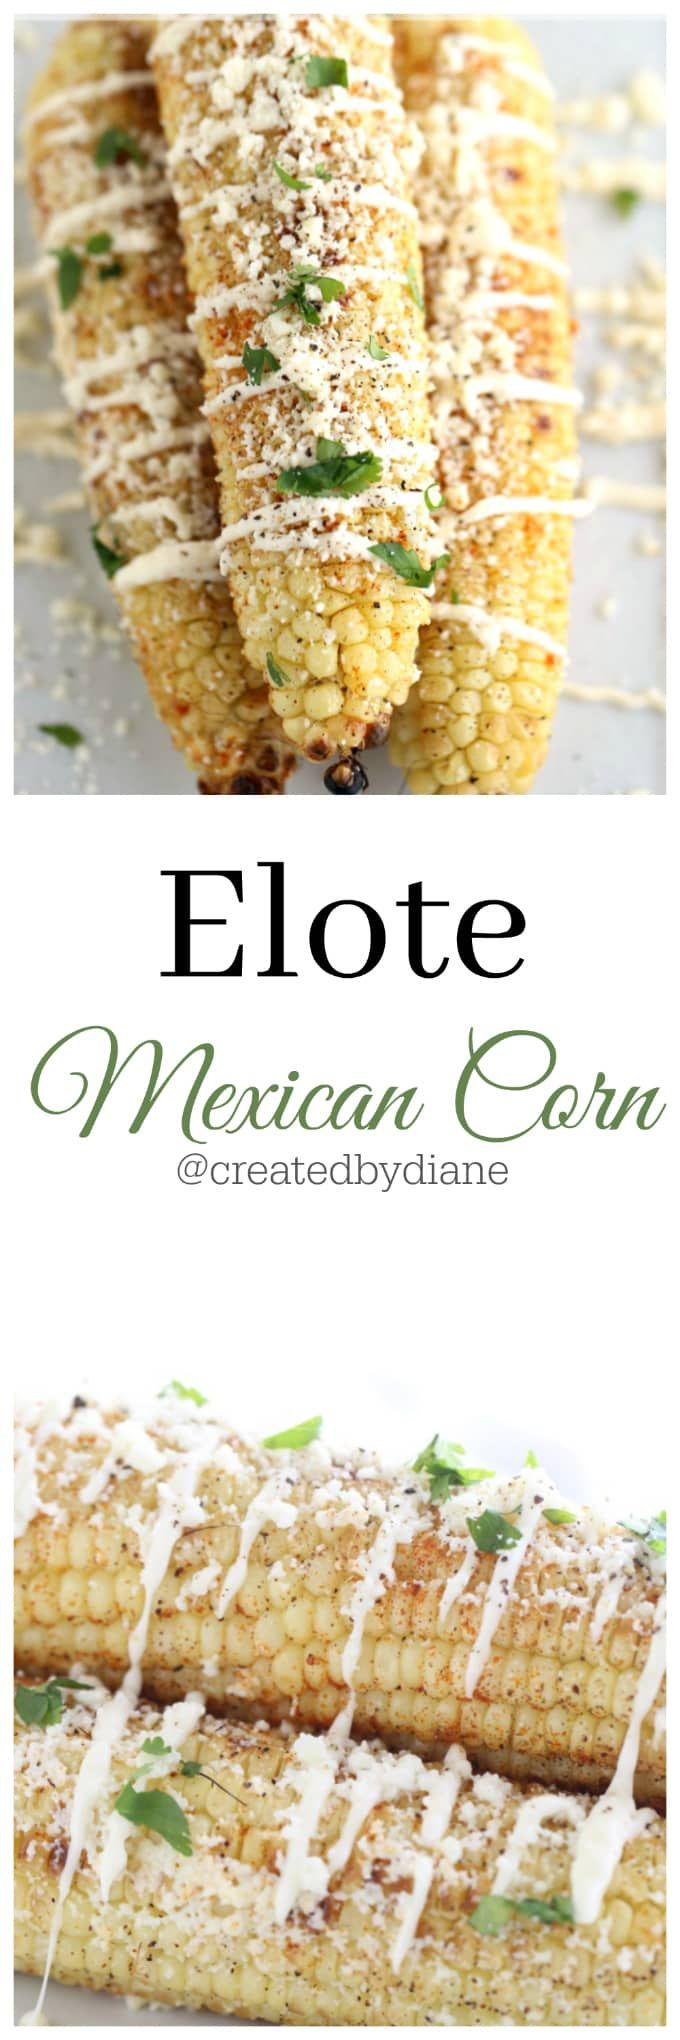 Elote Mexican Corn recipe make it on the grill or in the oven @createdbydiane @createdbydiane